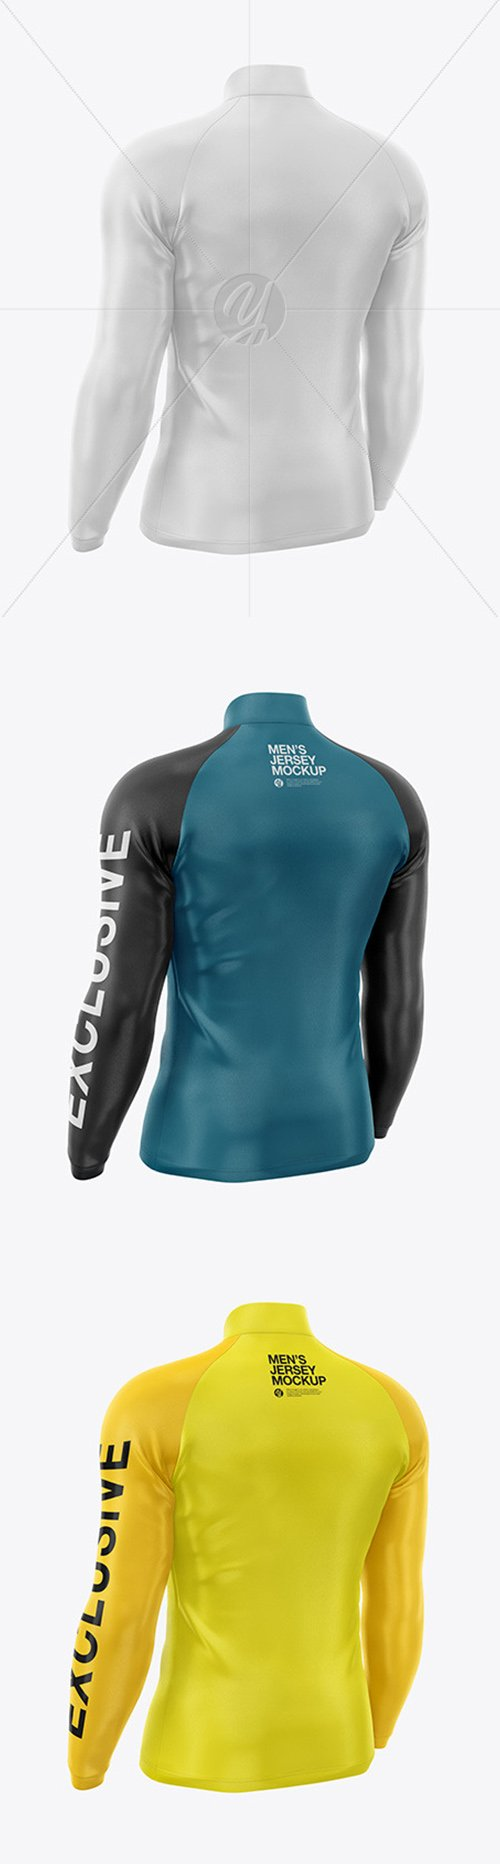 Mens Jersey With Long Sleeve Mockup - Backt Half Side View 49470